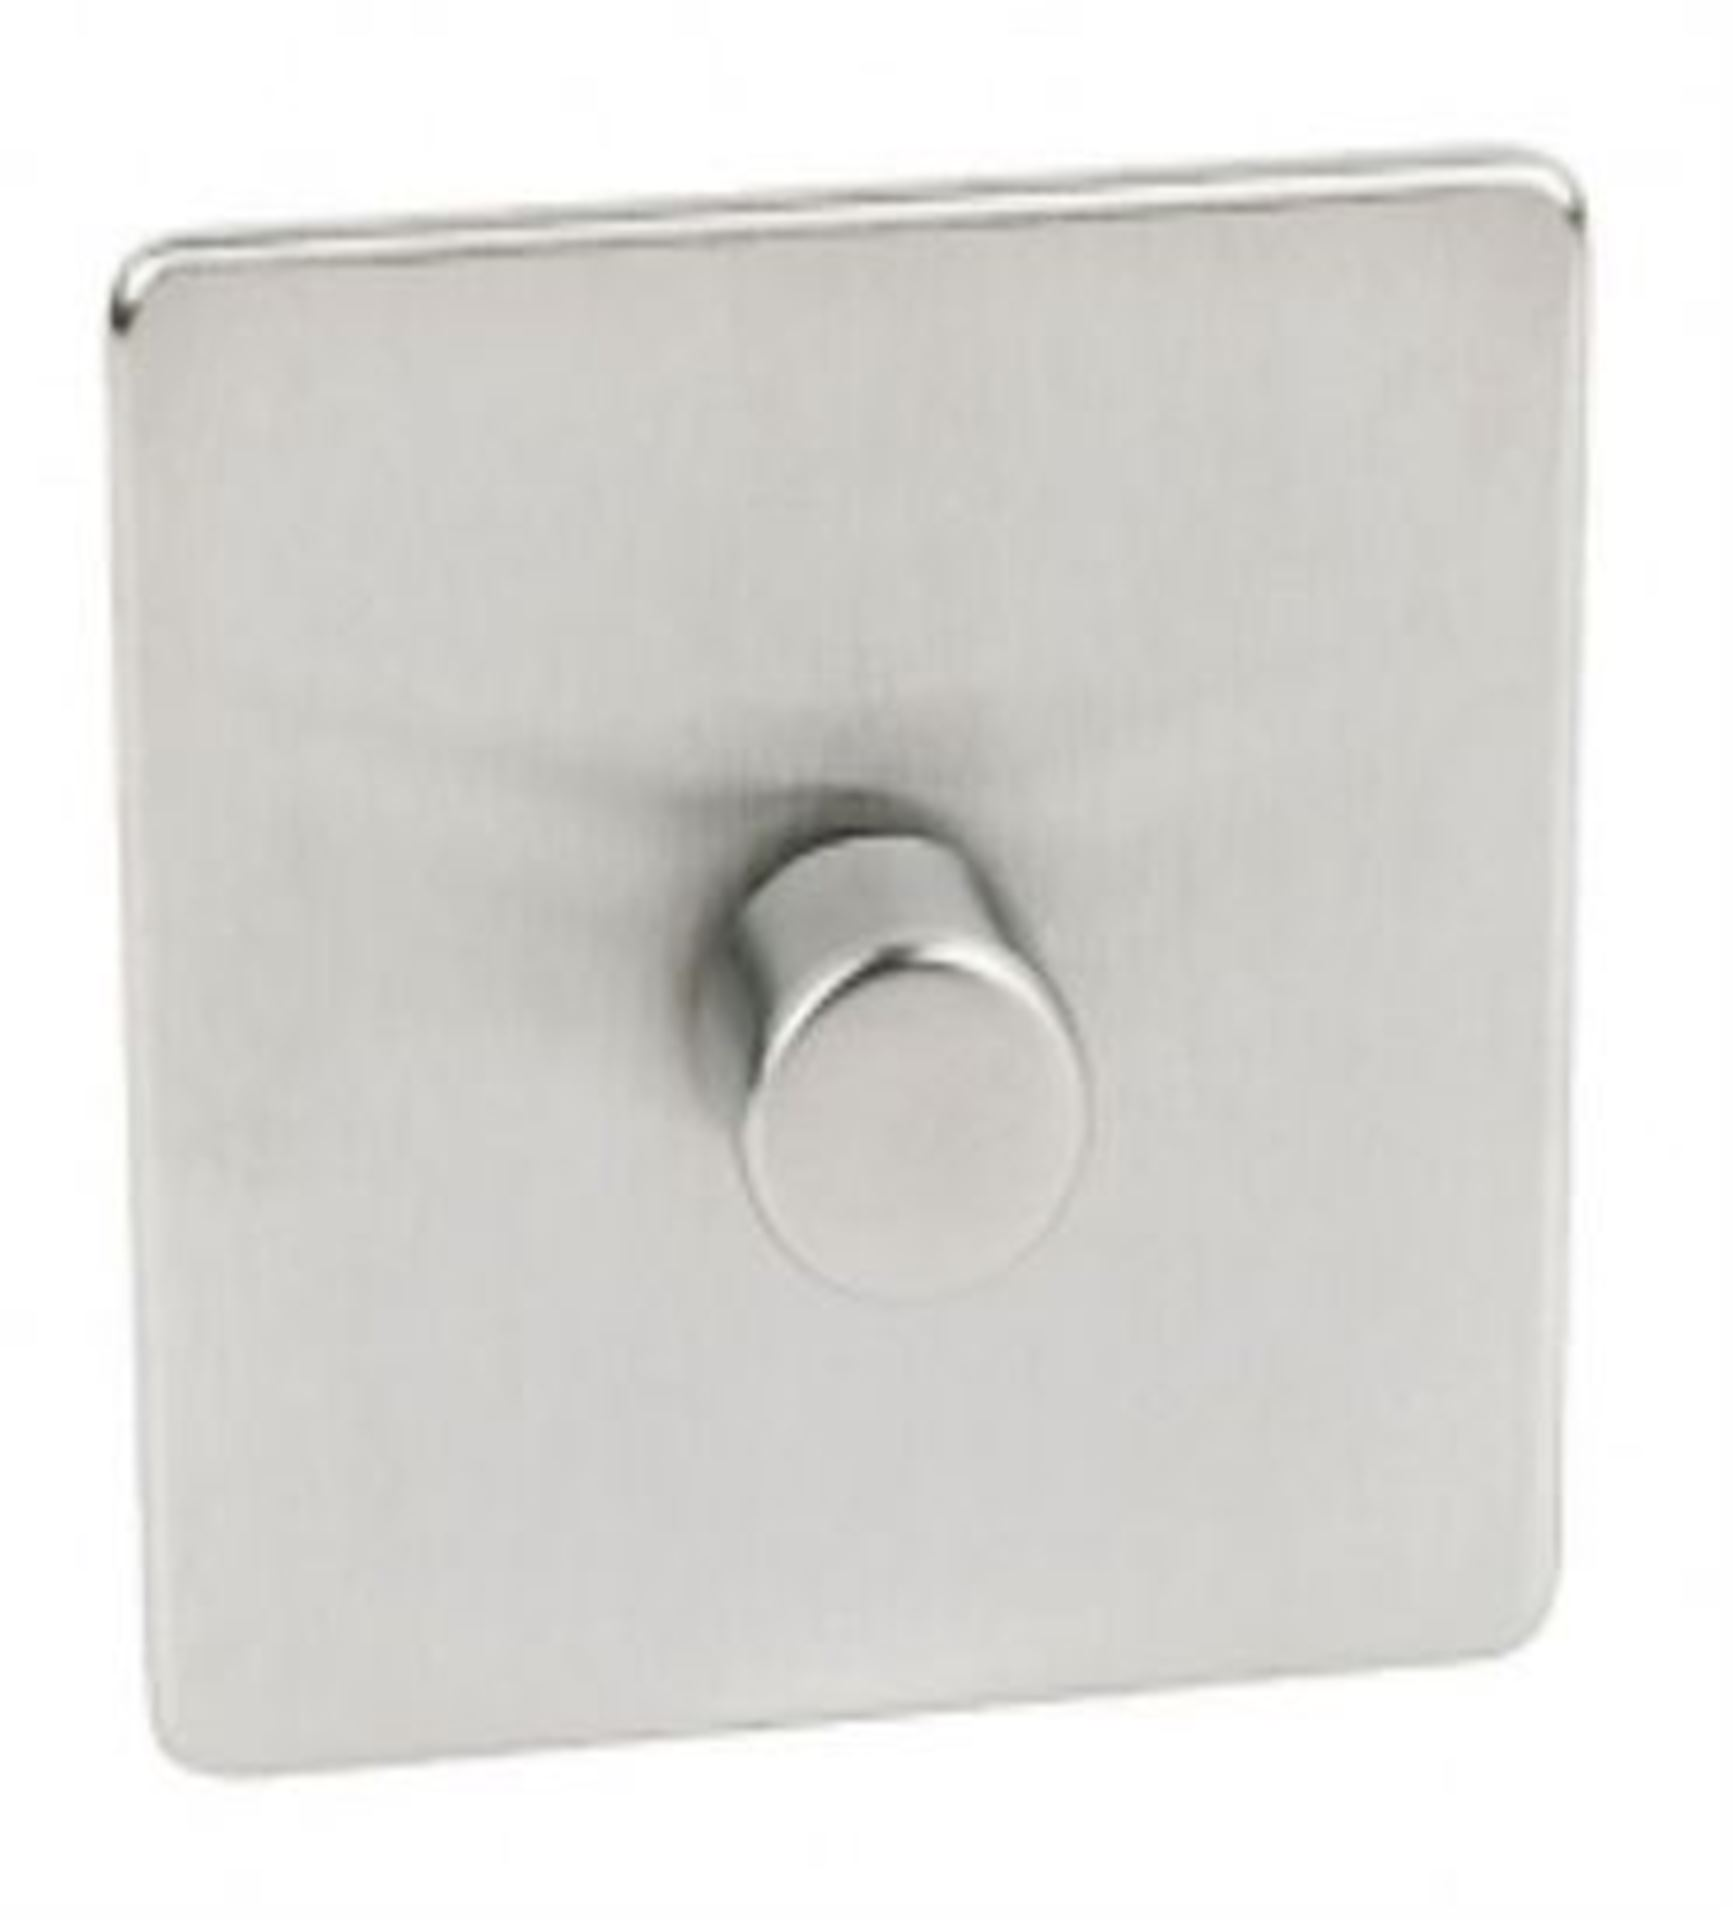 Crabtree Platinum Satin Chrome 1 Gang Dimmer Switch 400W 7400/D1SC